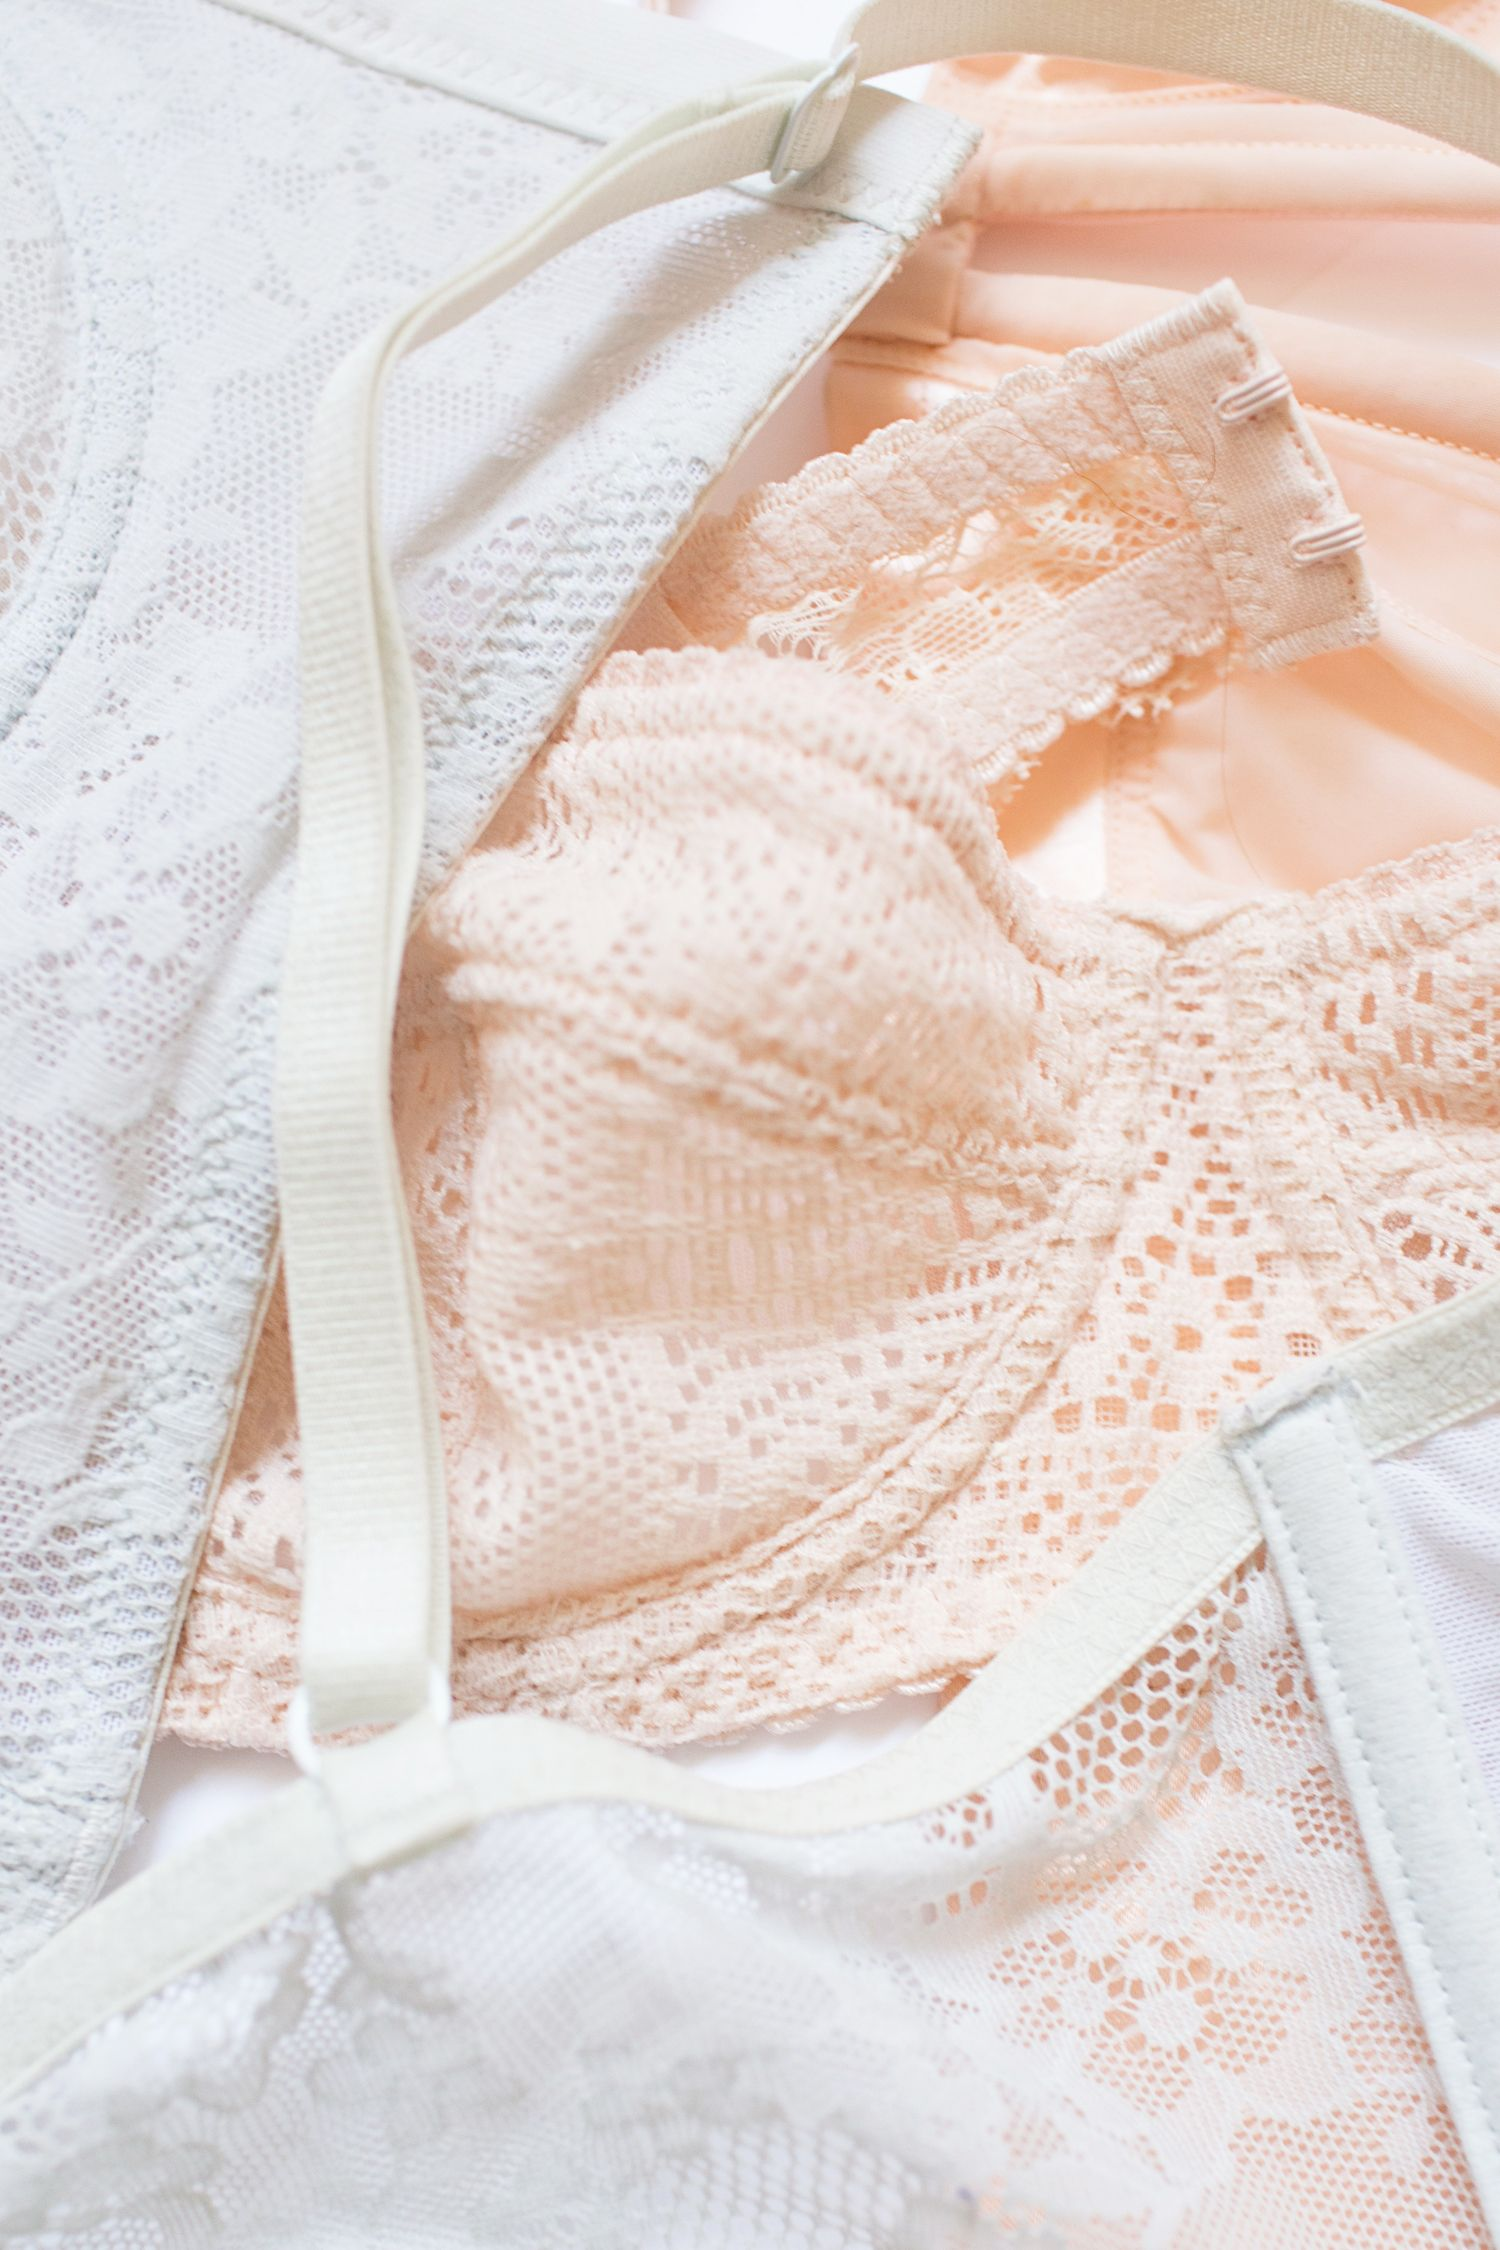 10 Things You May Not Know About Bra Making